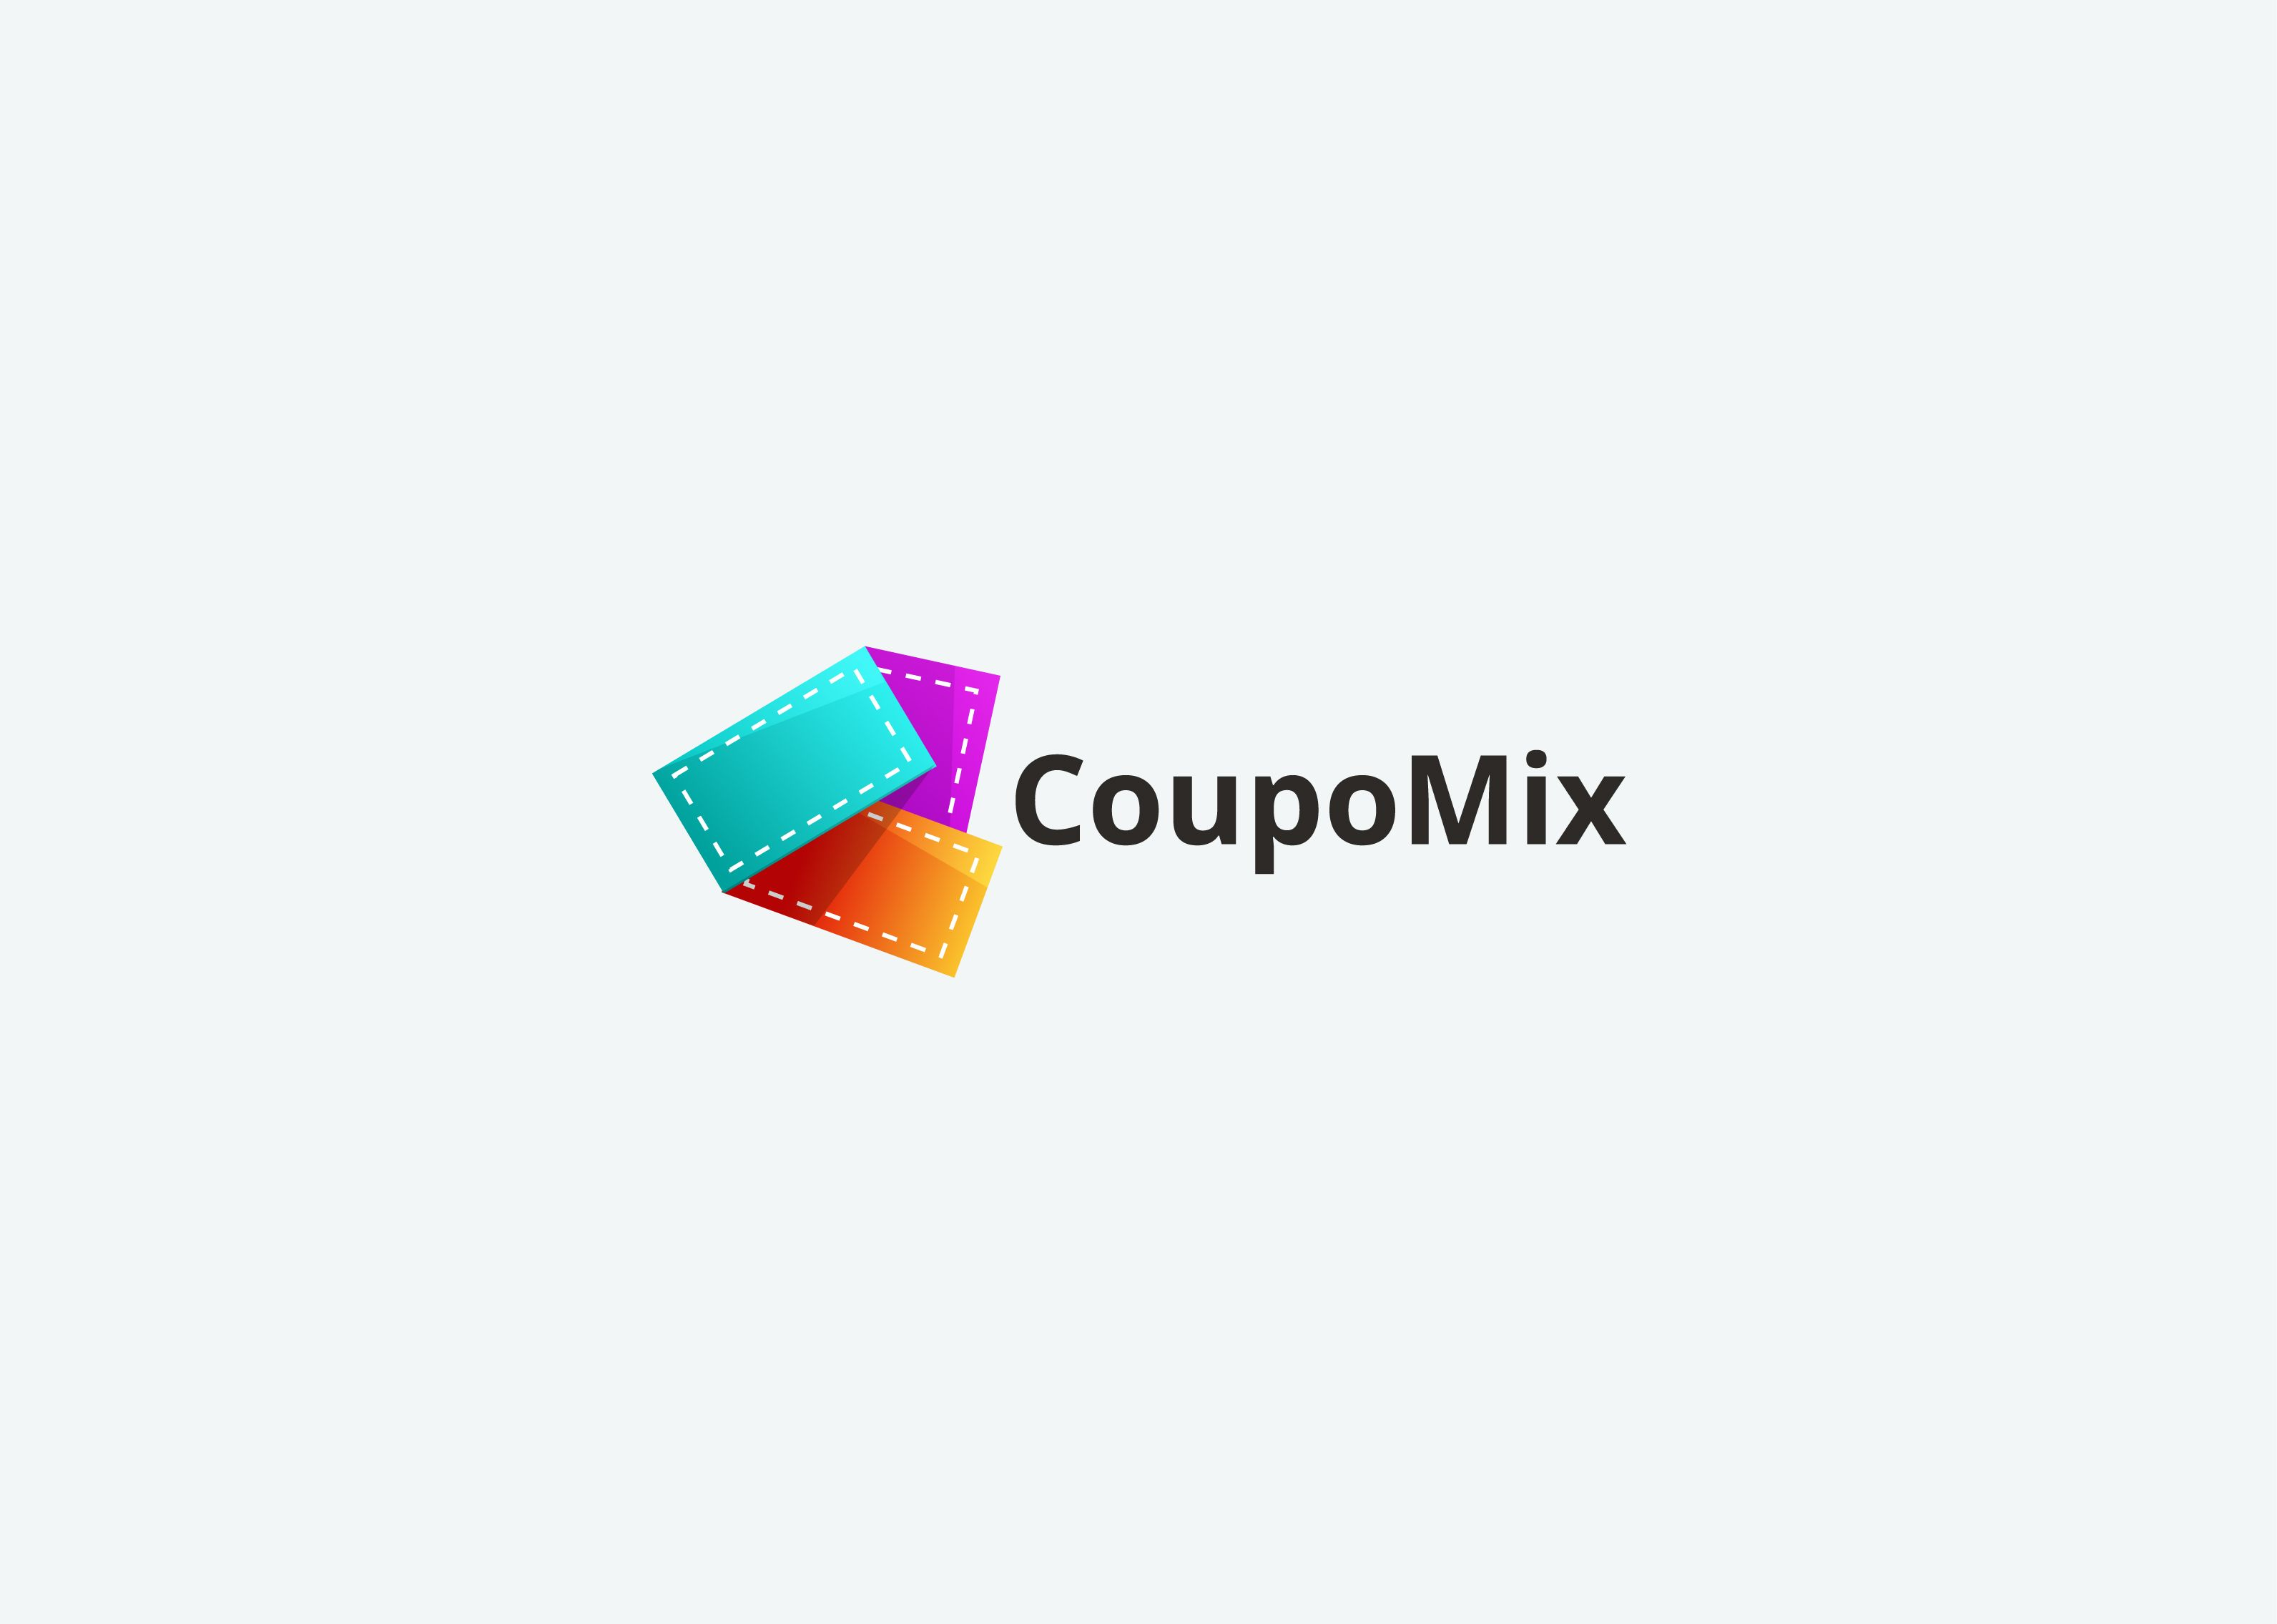 Coupomix Logo Design For Coupons Product Logo Design Marketing And Advertising Design